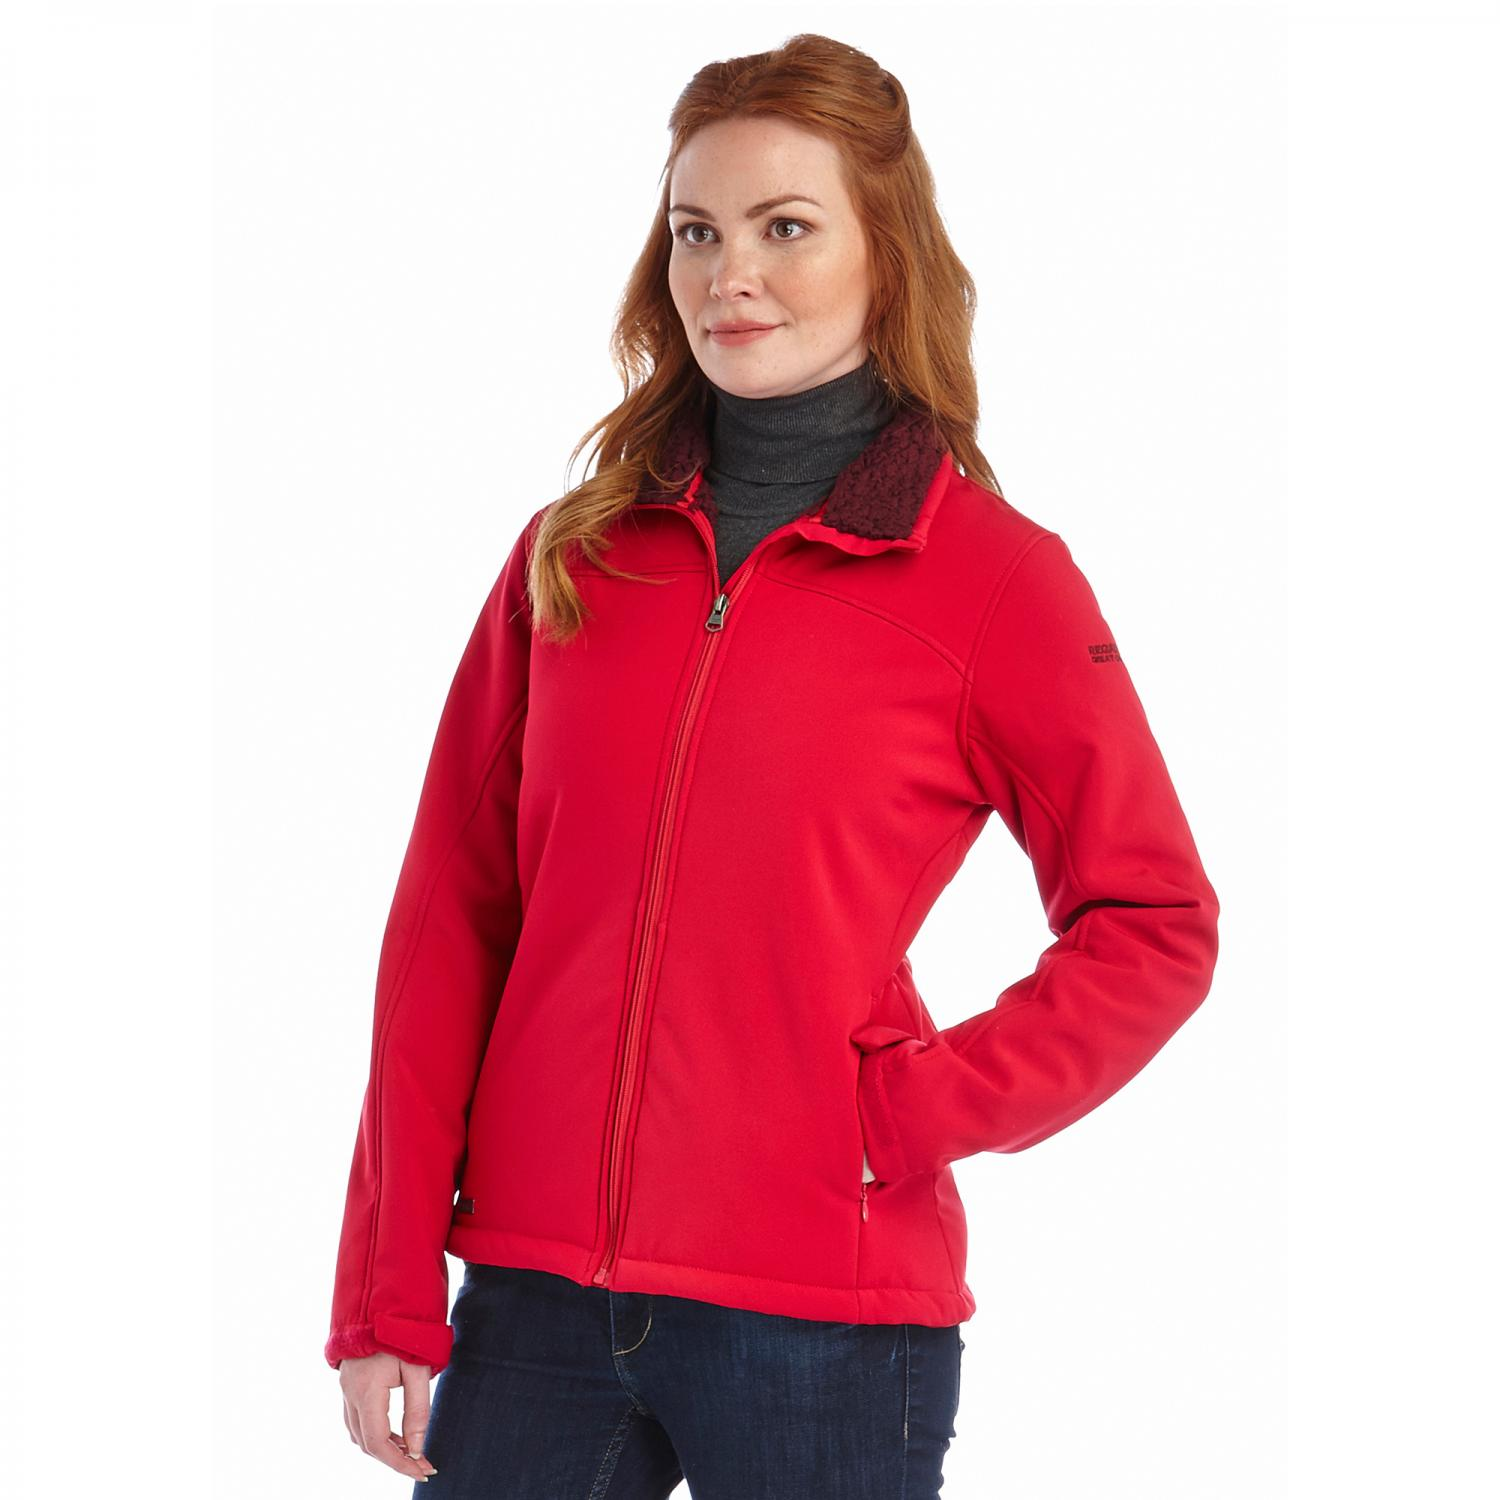 Tulsie Softshell Jacket Persian Red